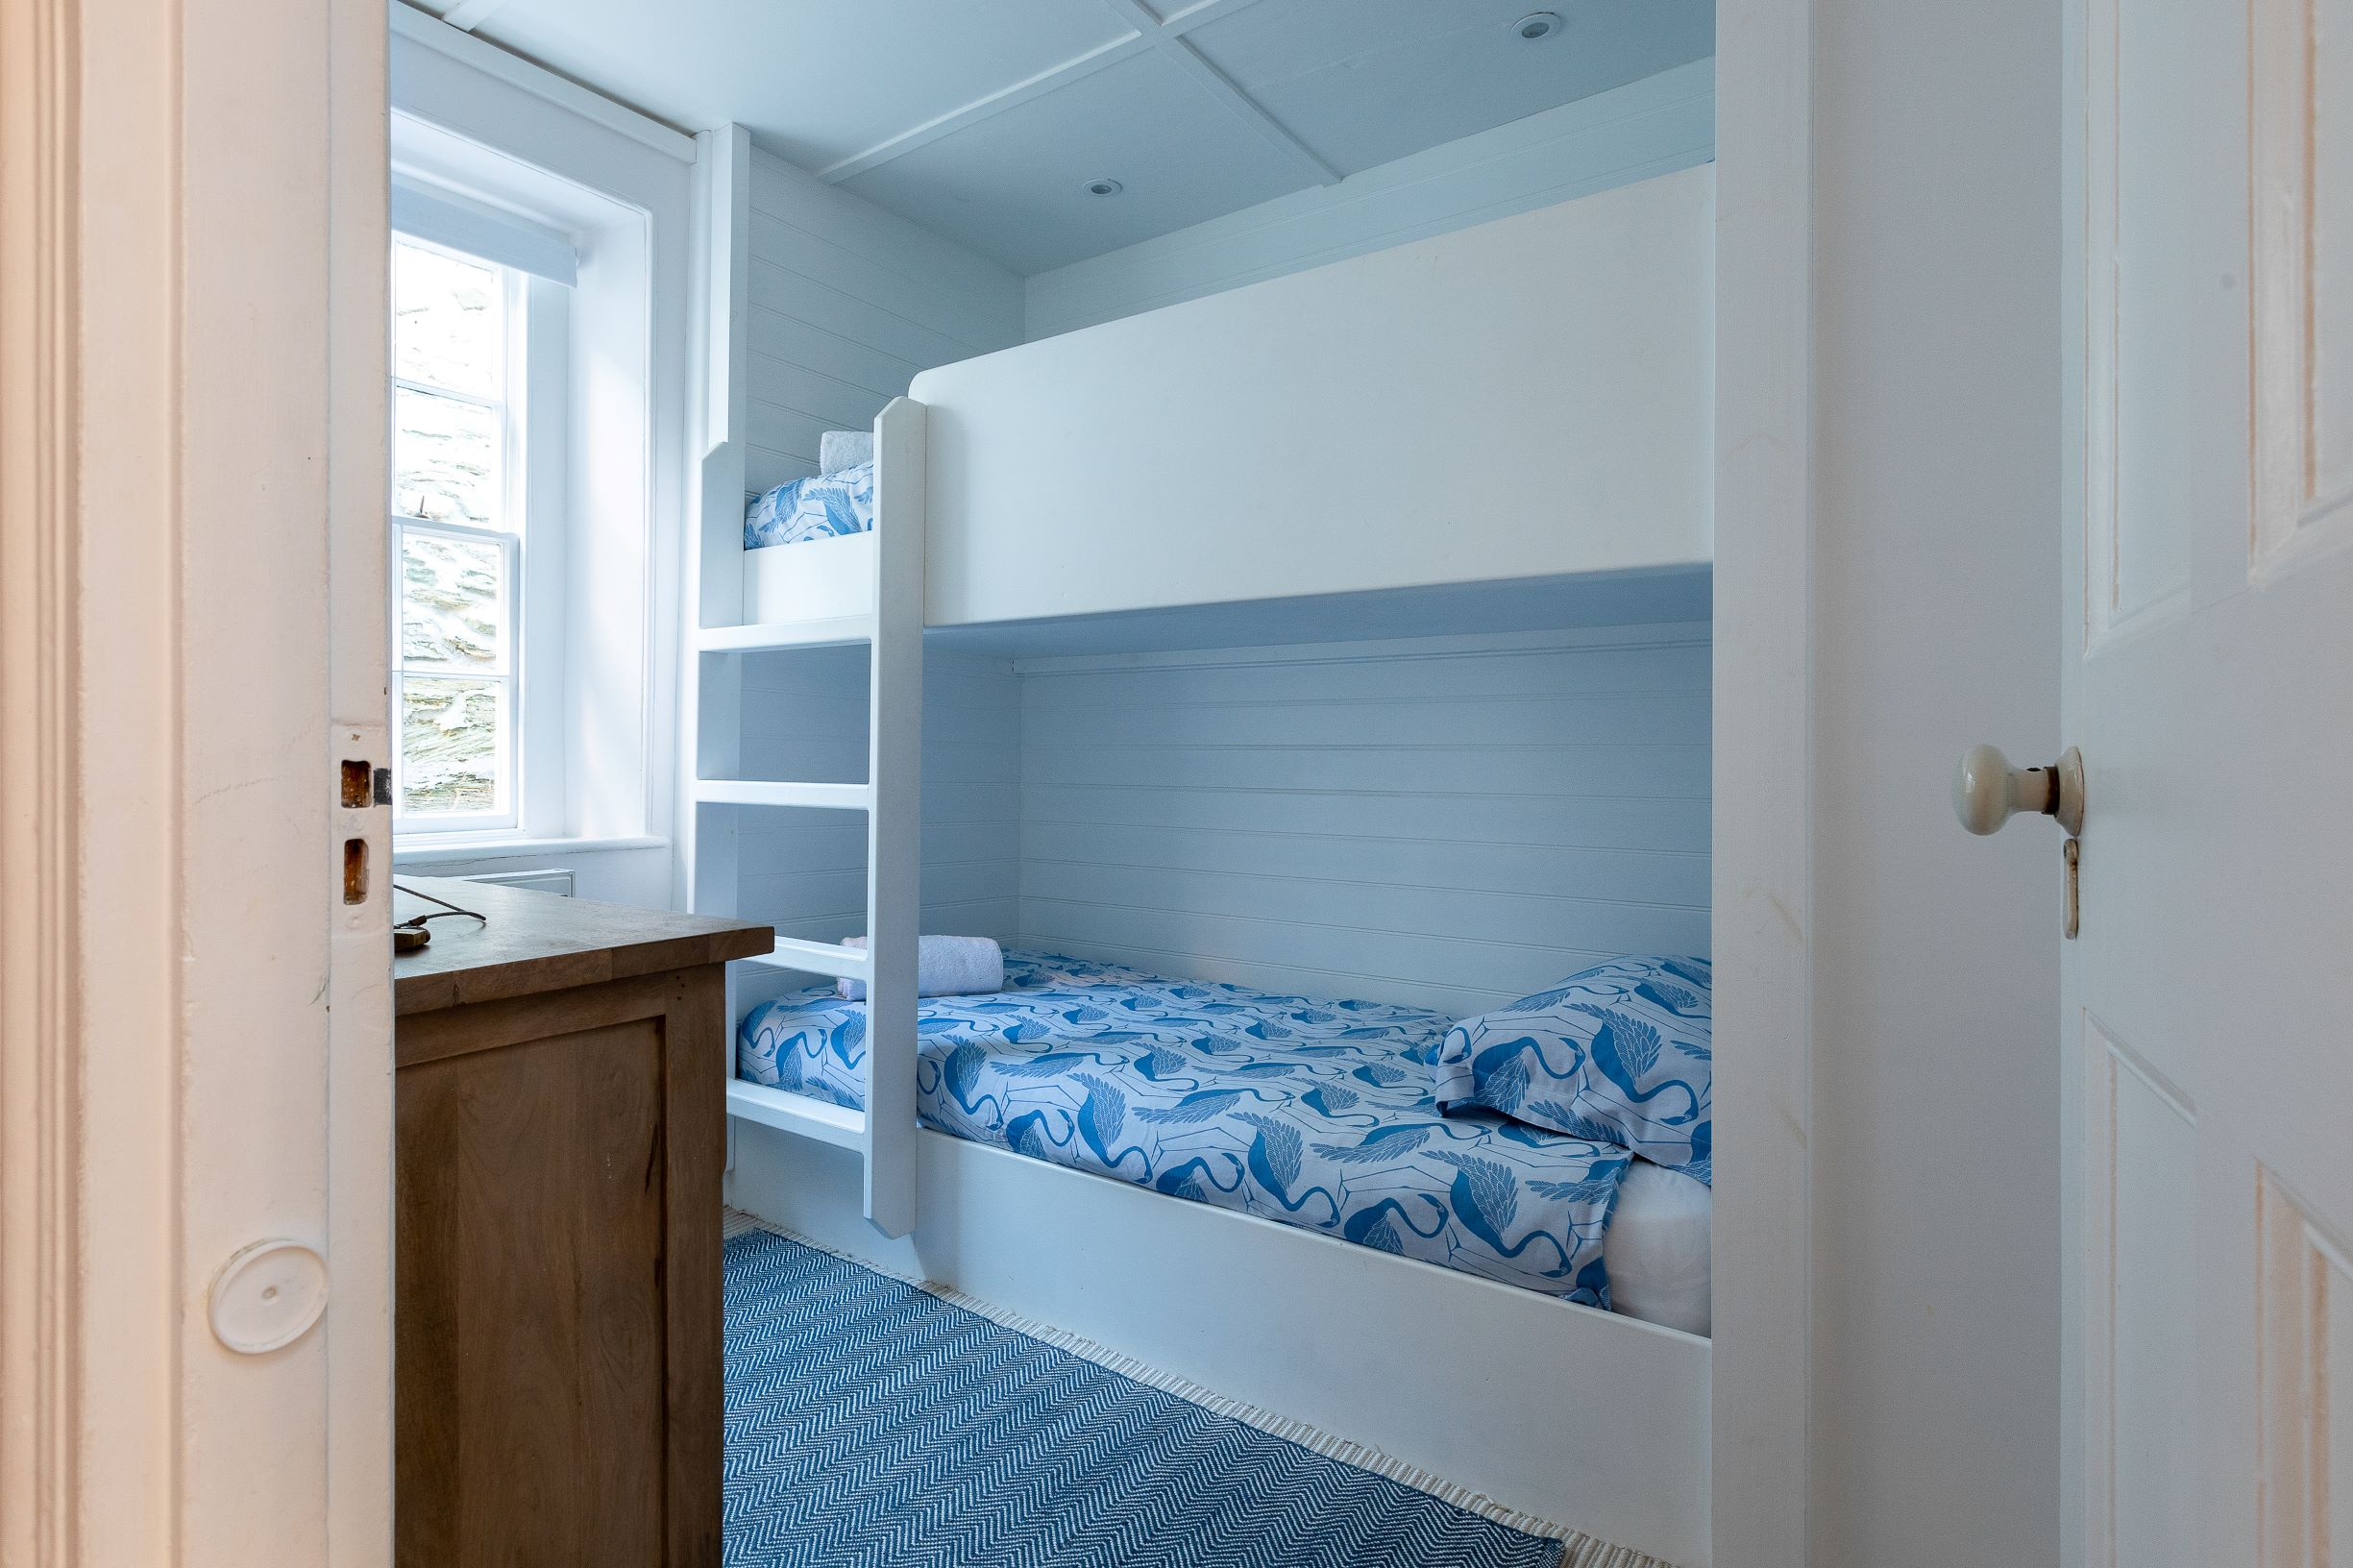 Built in bunk beds 21 Island street Salc